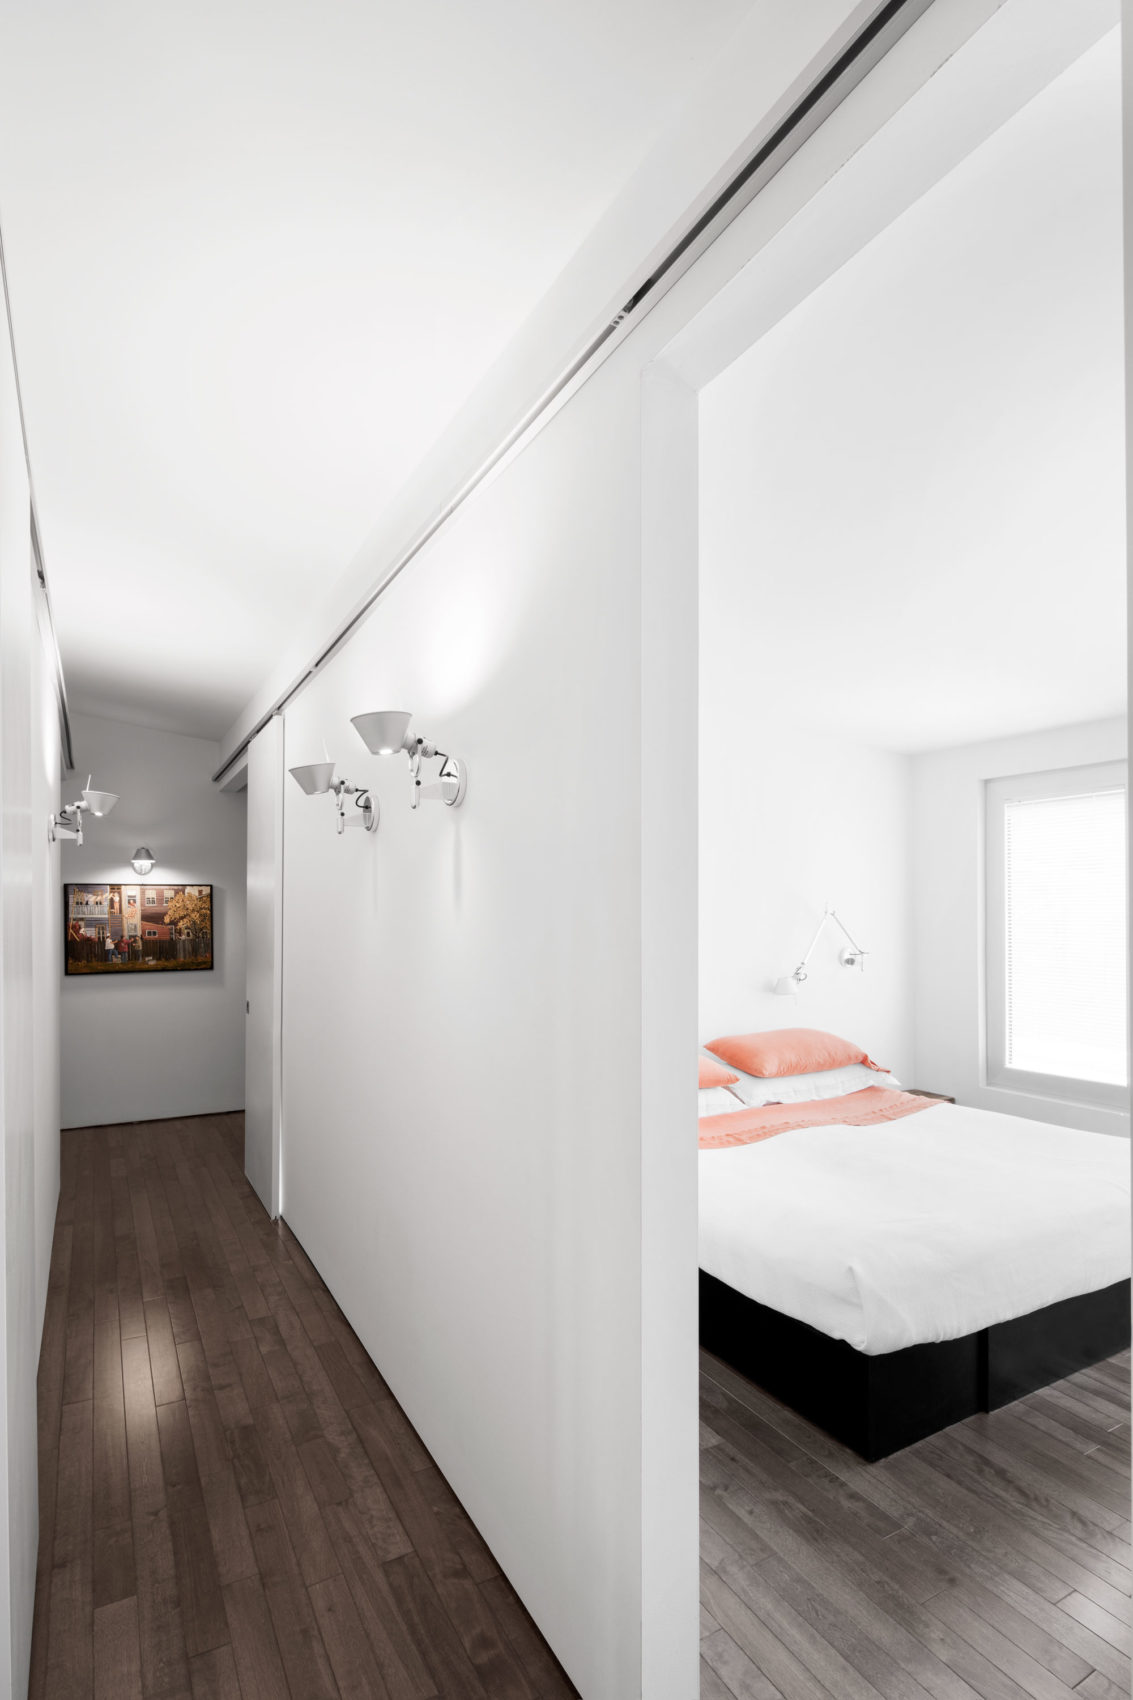 Residence LeJeune by Architecture Open Form (11)